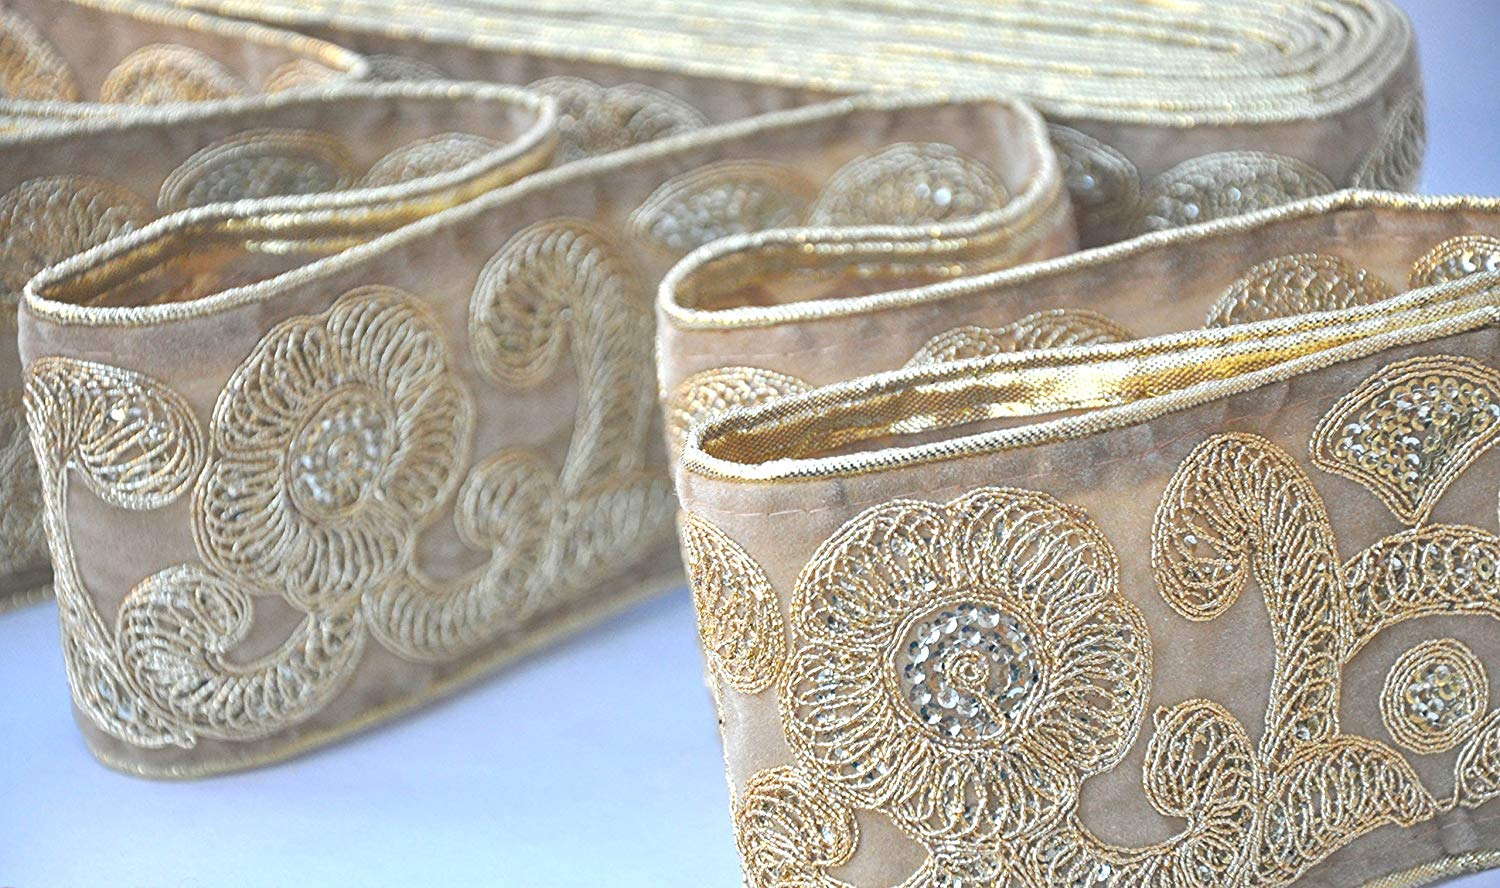 1 Yard Latest Indian Cutwork Bow Patch Sari Dupatta Golden Zari Lace Trim Border